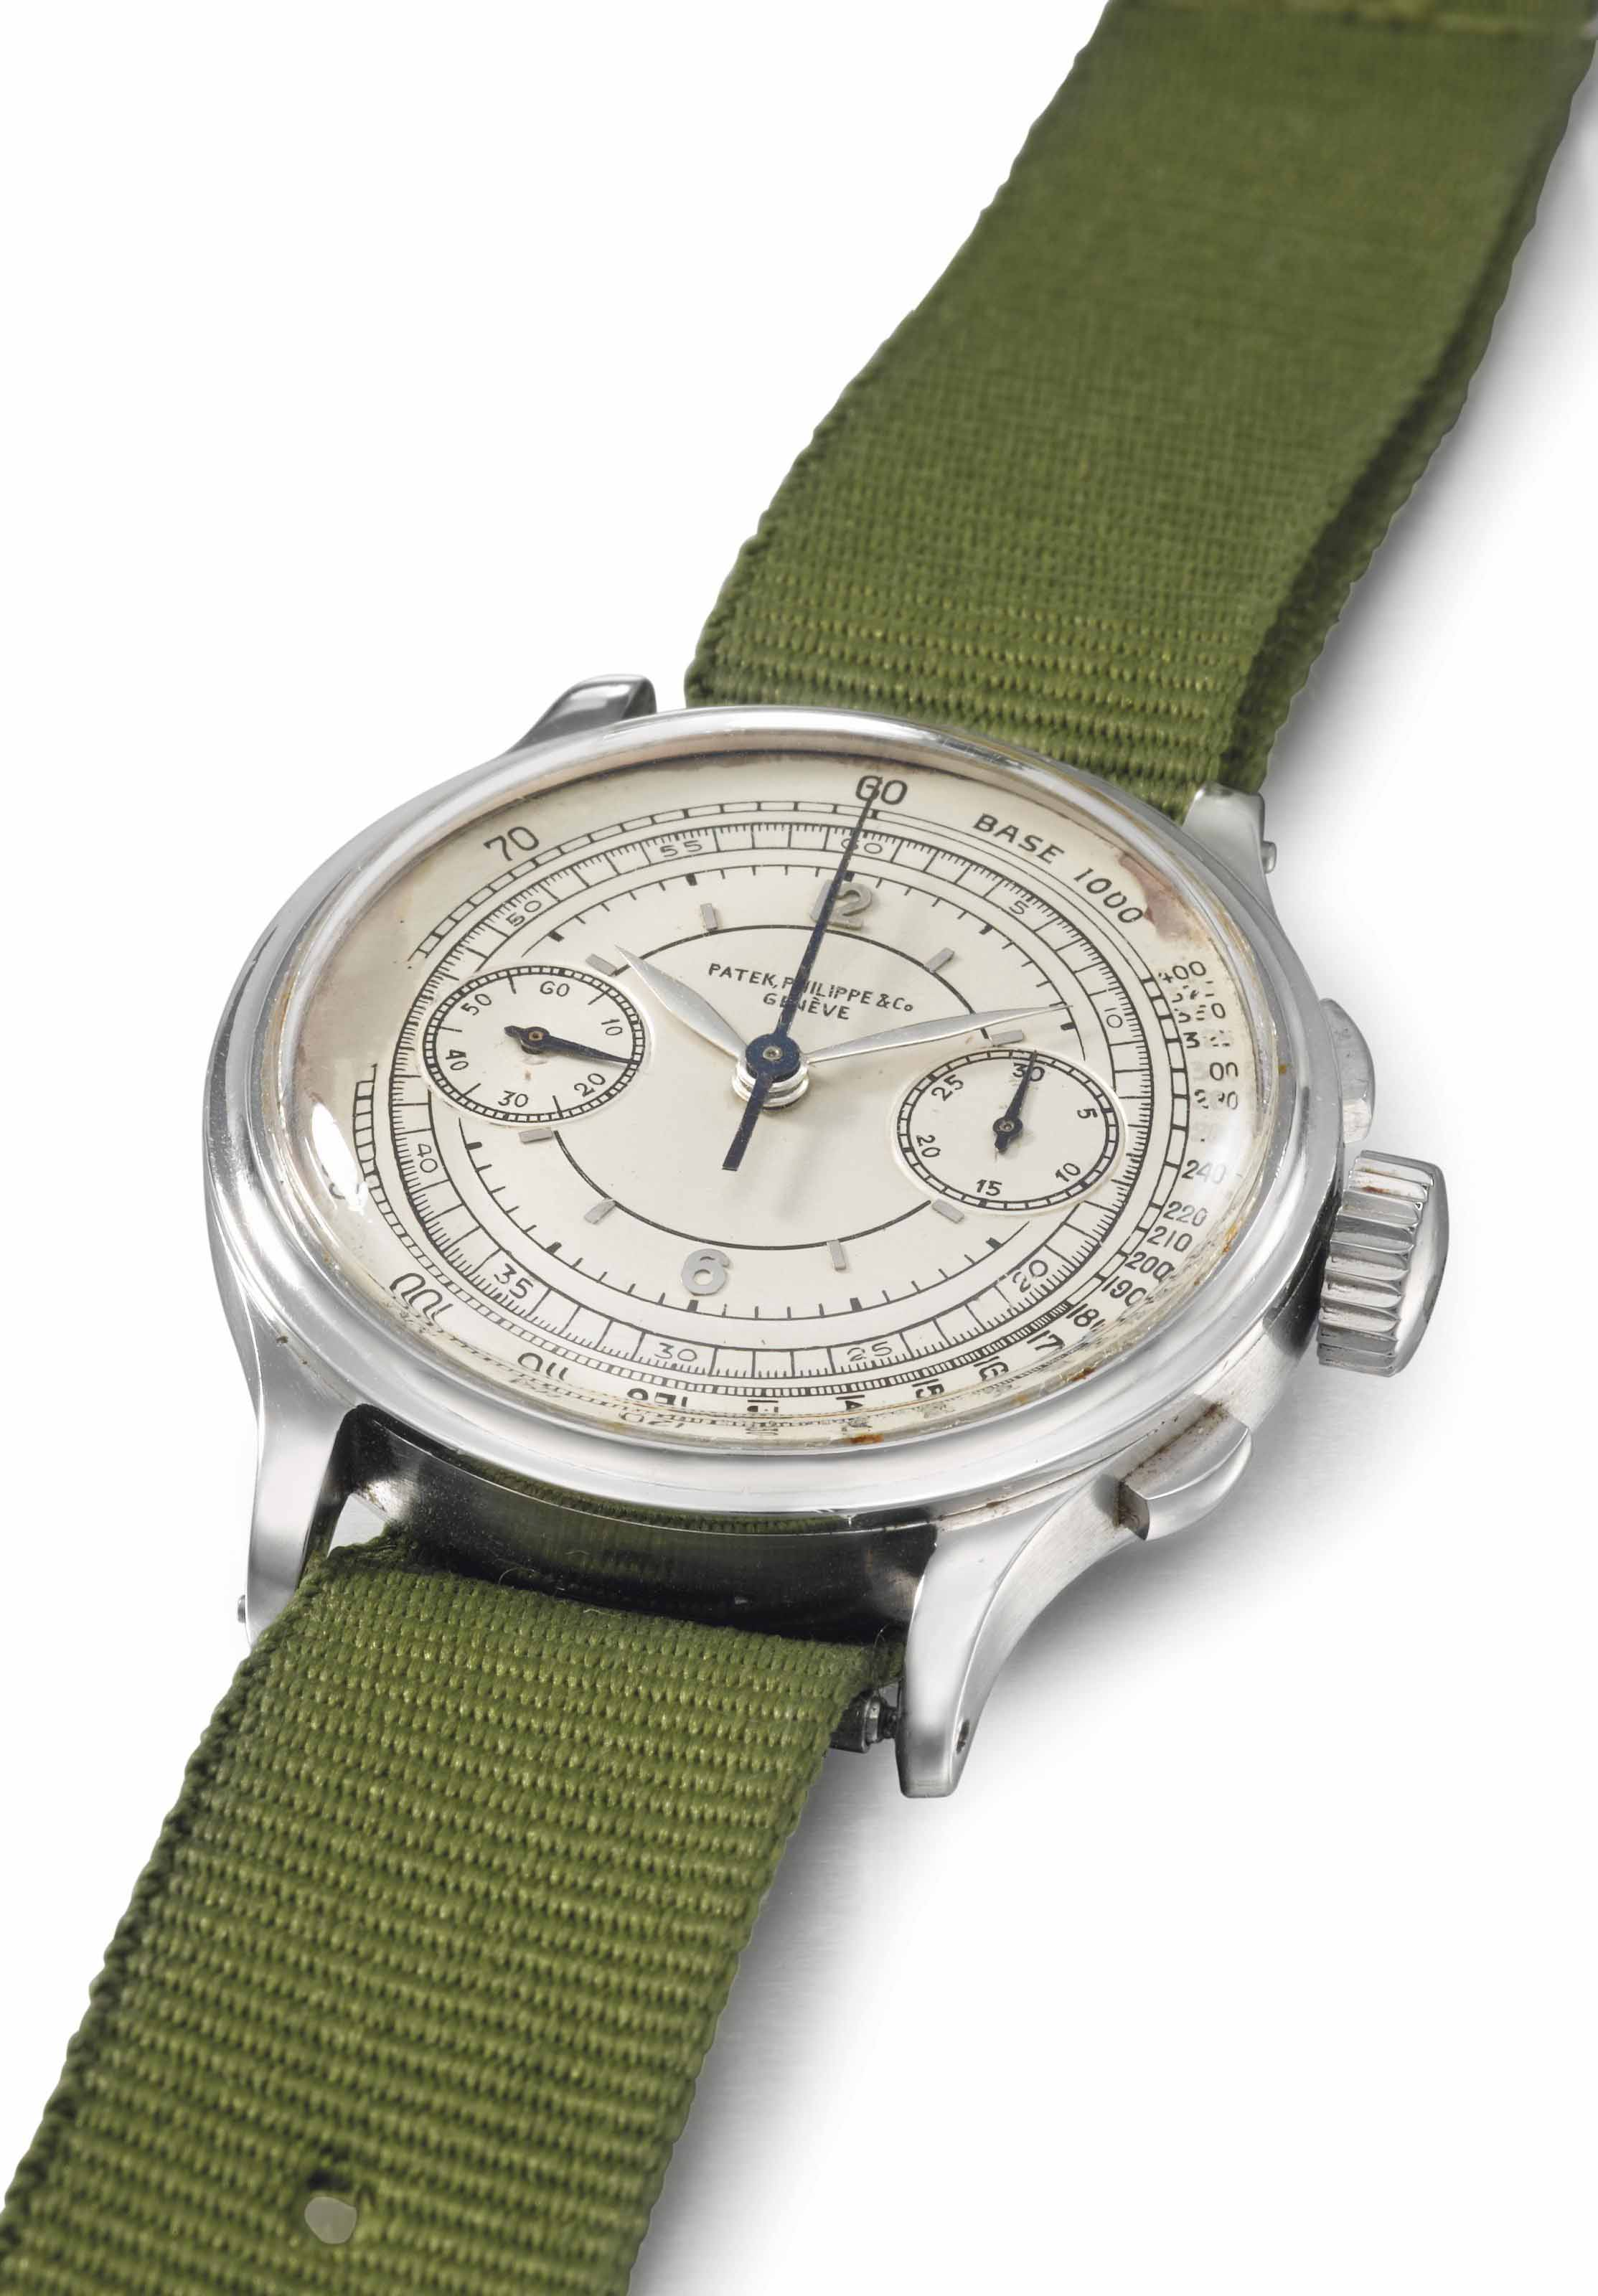 Patek Philippe. An extremely rare, large and historically important stainless steel chronograph wristwatch with silvered sector dial